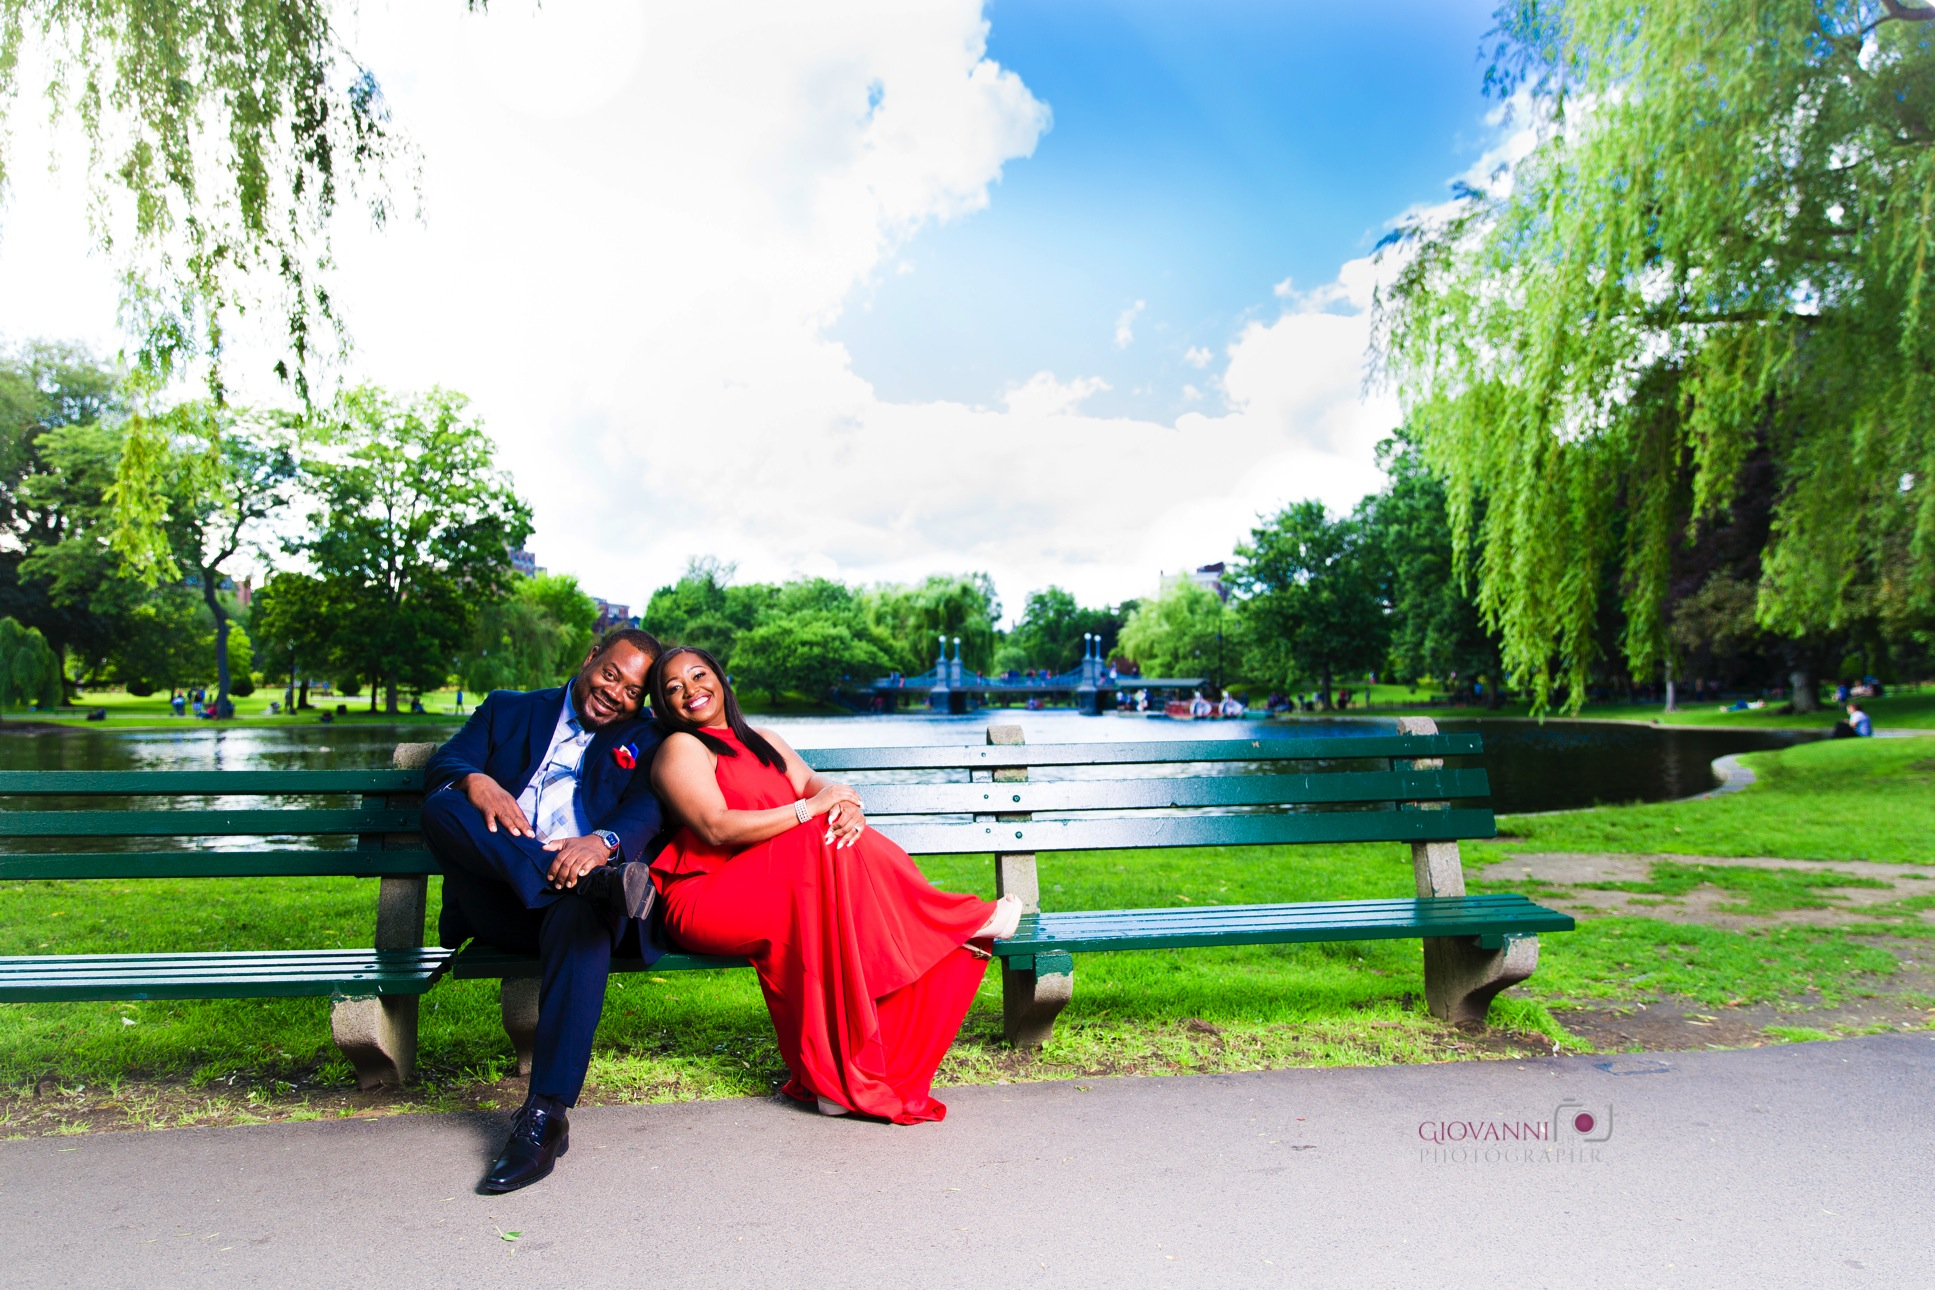 8C2A2931 Giovanni The Photographer Boston Wedding and Engagement Photography Nathaelle and Ross Nathaelle and Ross Nathaelle and Ross Nathaelle and Ross - Boston Public garden Common - Four Seasons Hotel WM35.jpg